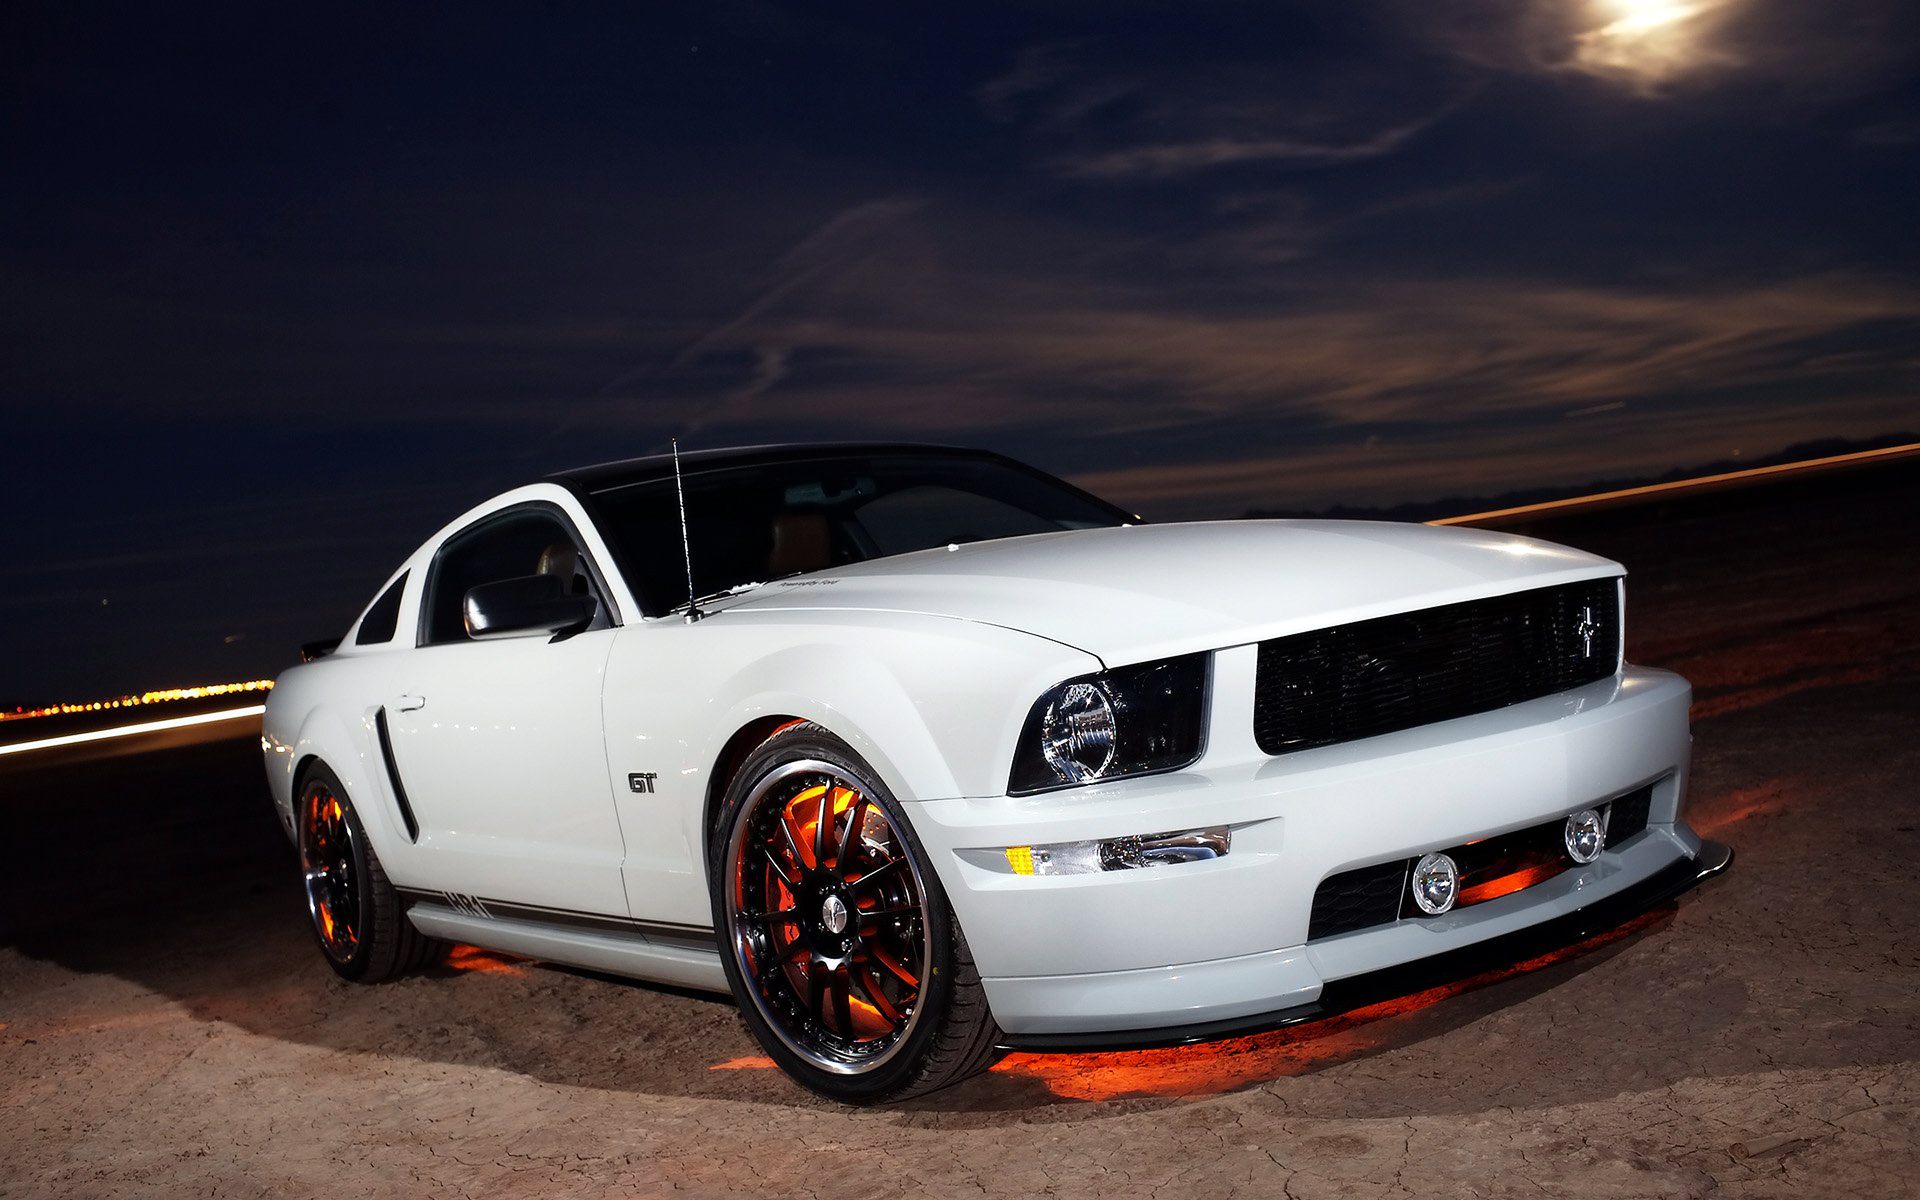 White for GT mustang supercars HD Cars Background Wallpapers HD 1920x1200